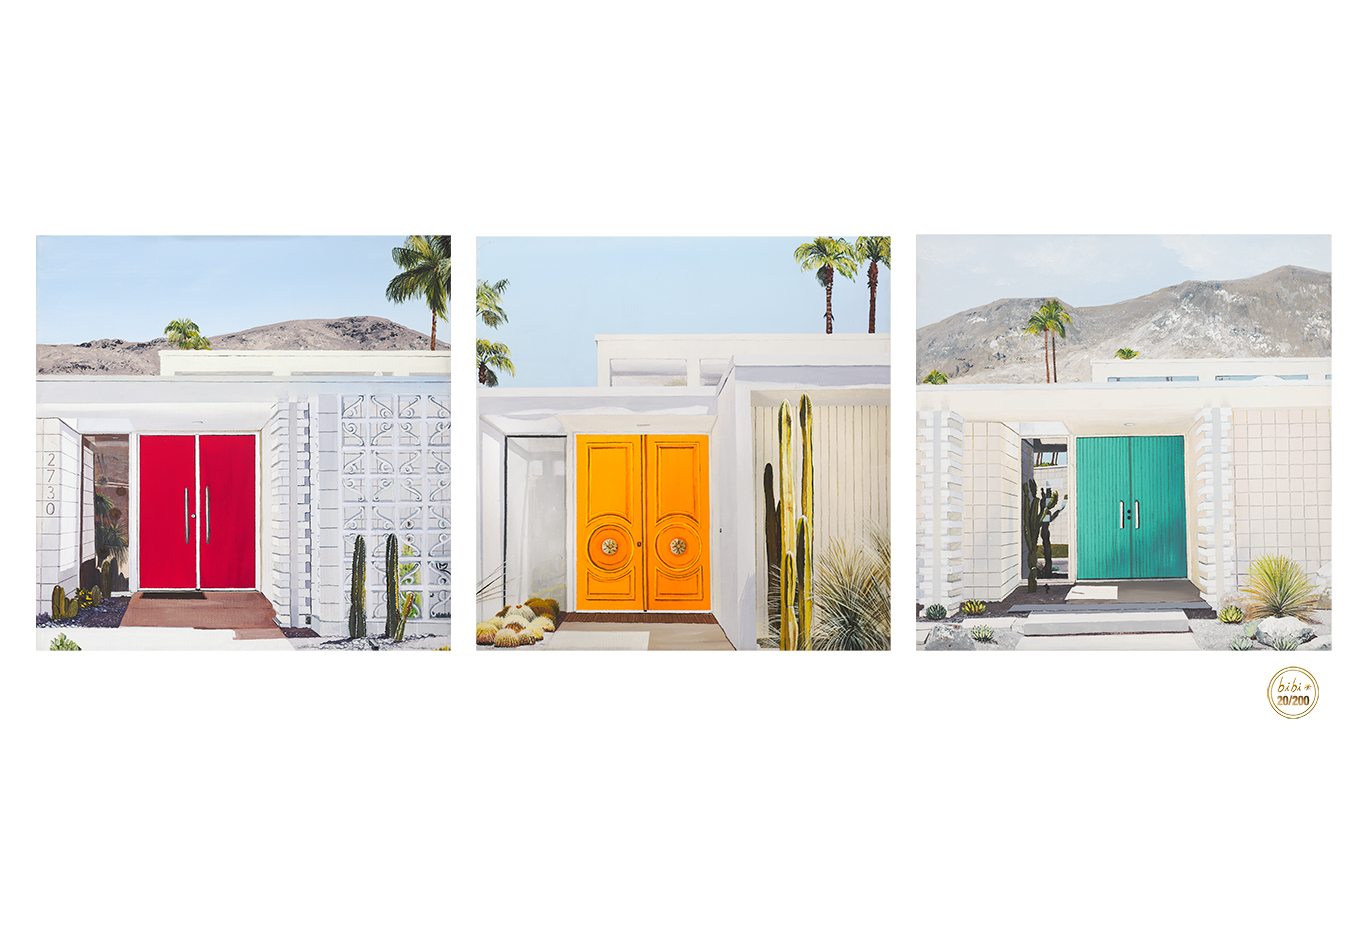 - three doors down to palm springs$150.00This is a Limited edition Giclée of 200 hand signed by the artist, printed on archival acid-free paper 19